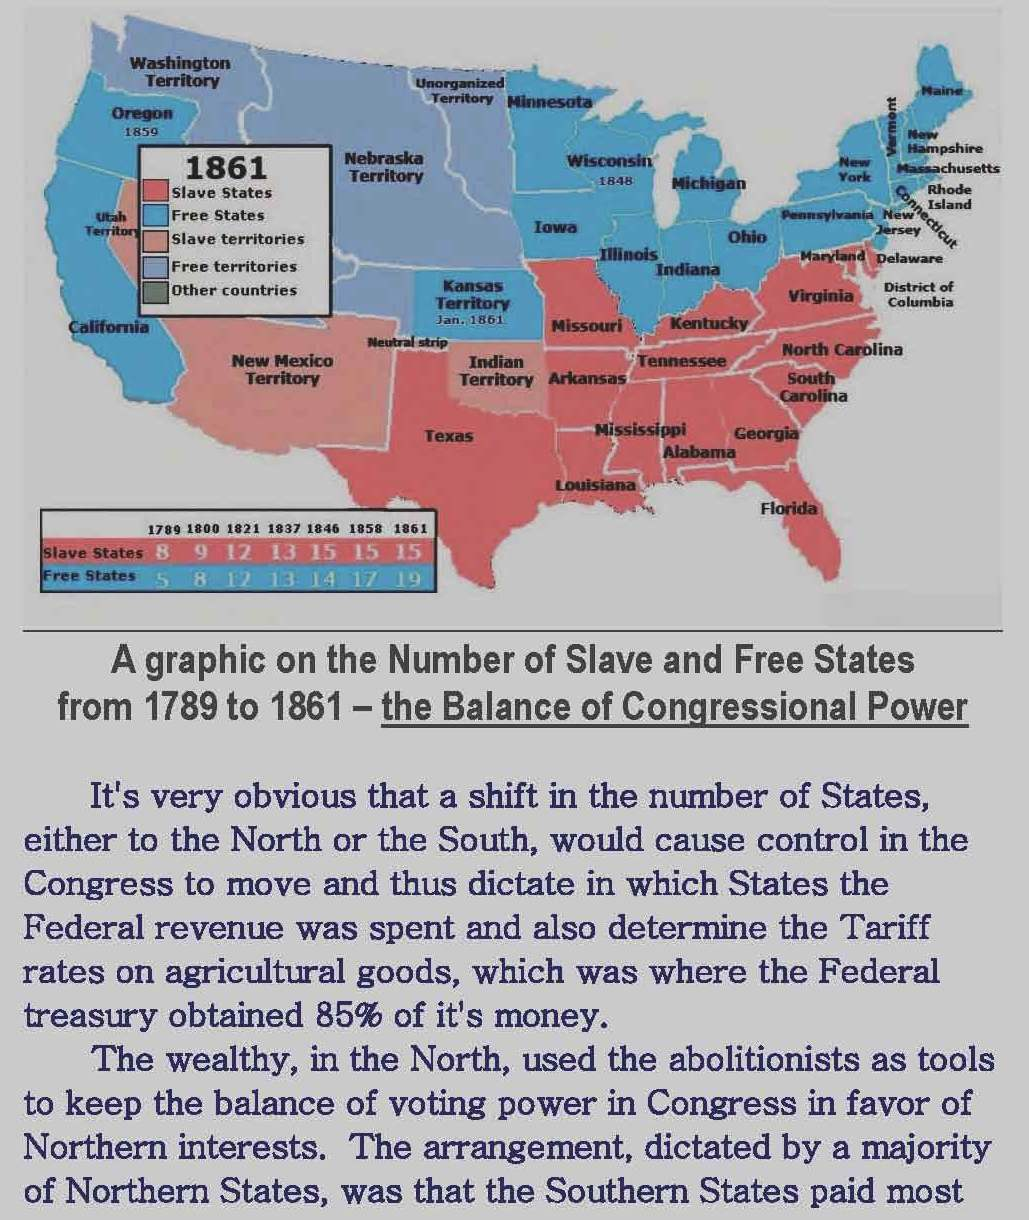 Number-of-Slave-and-Free-States-from-1789-to-1861-the-balance-of-power_Page_1